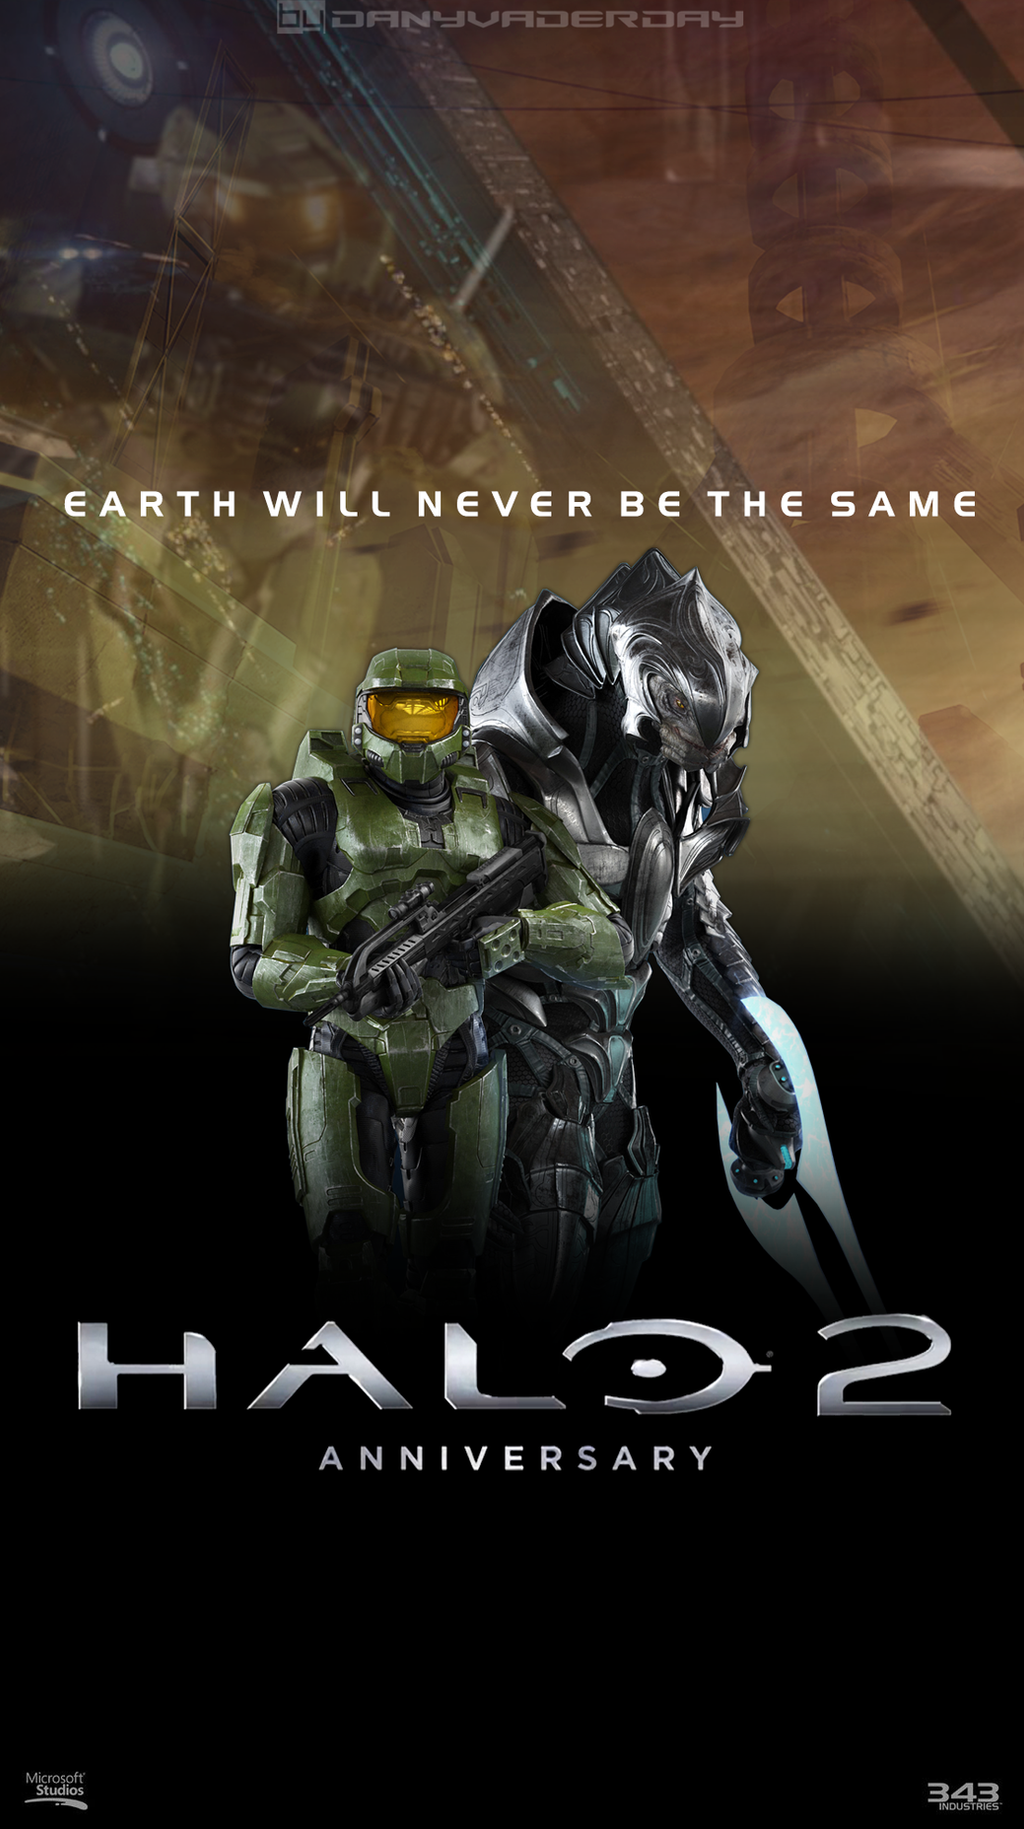 halo 2 anniversary poster by danyvaderday on deviantart